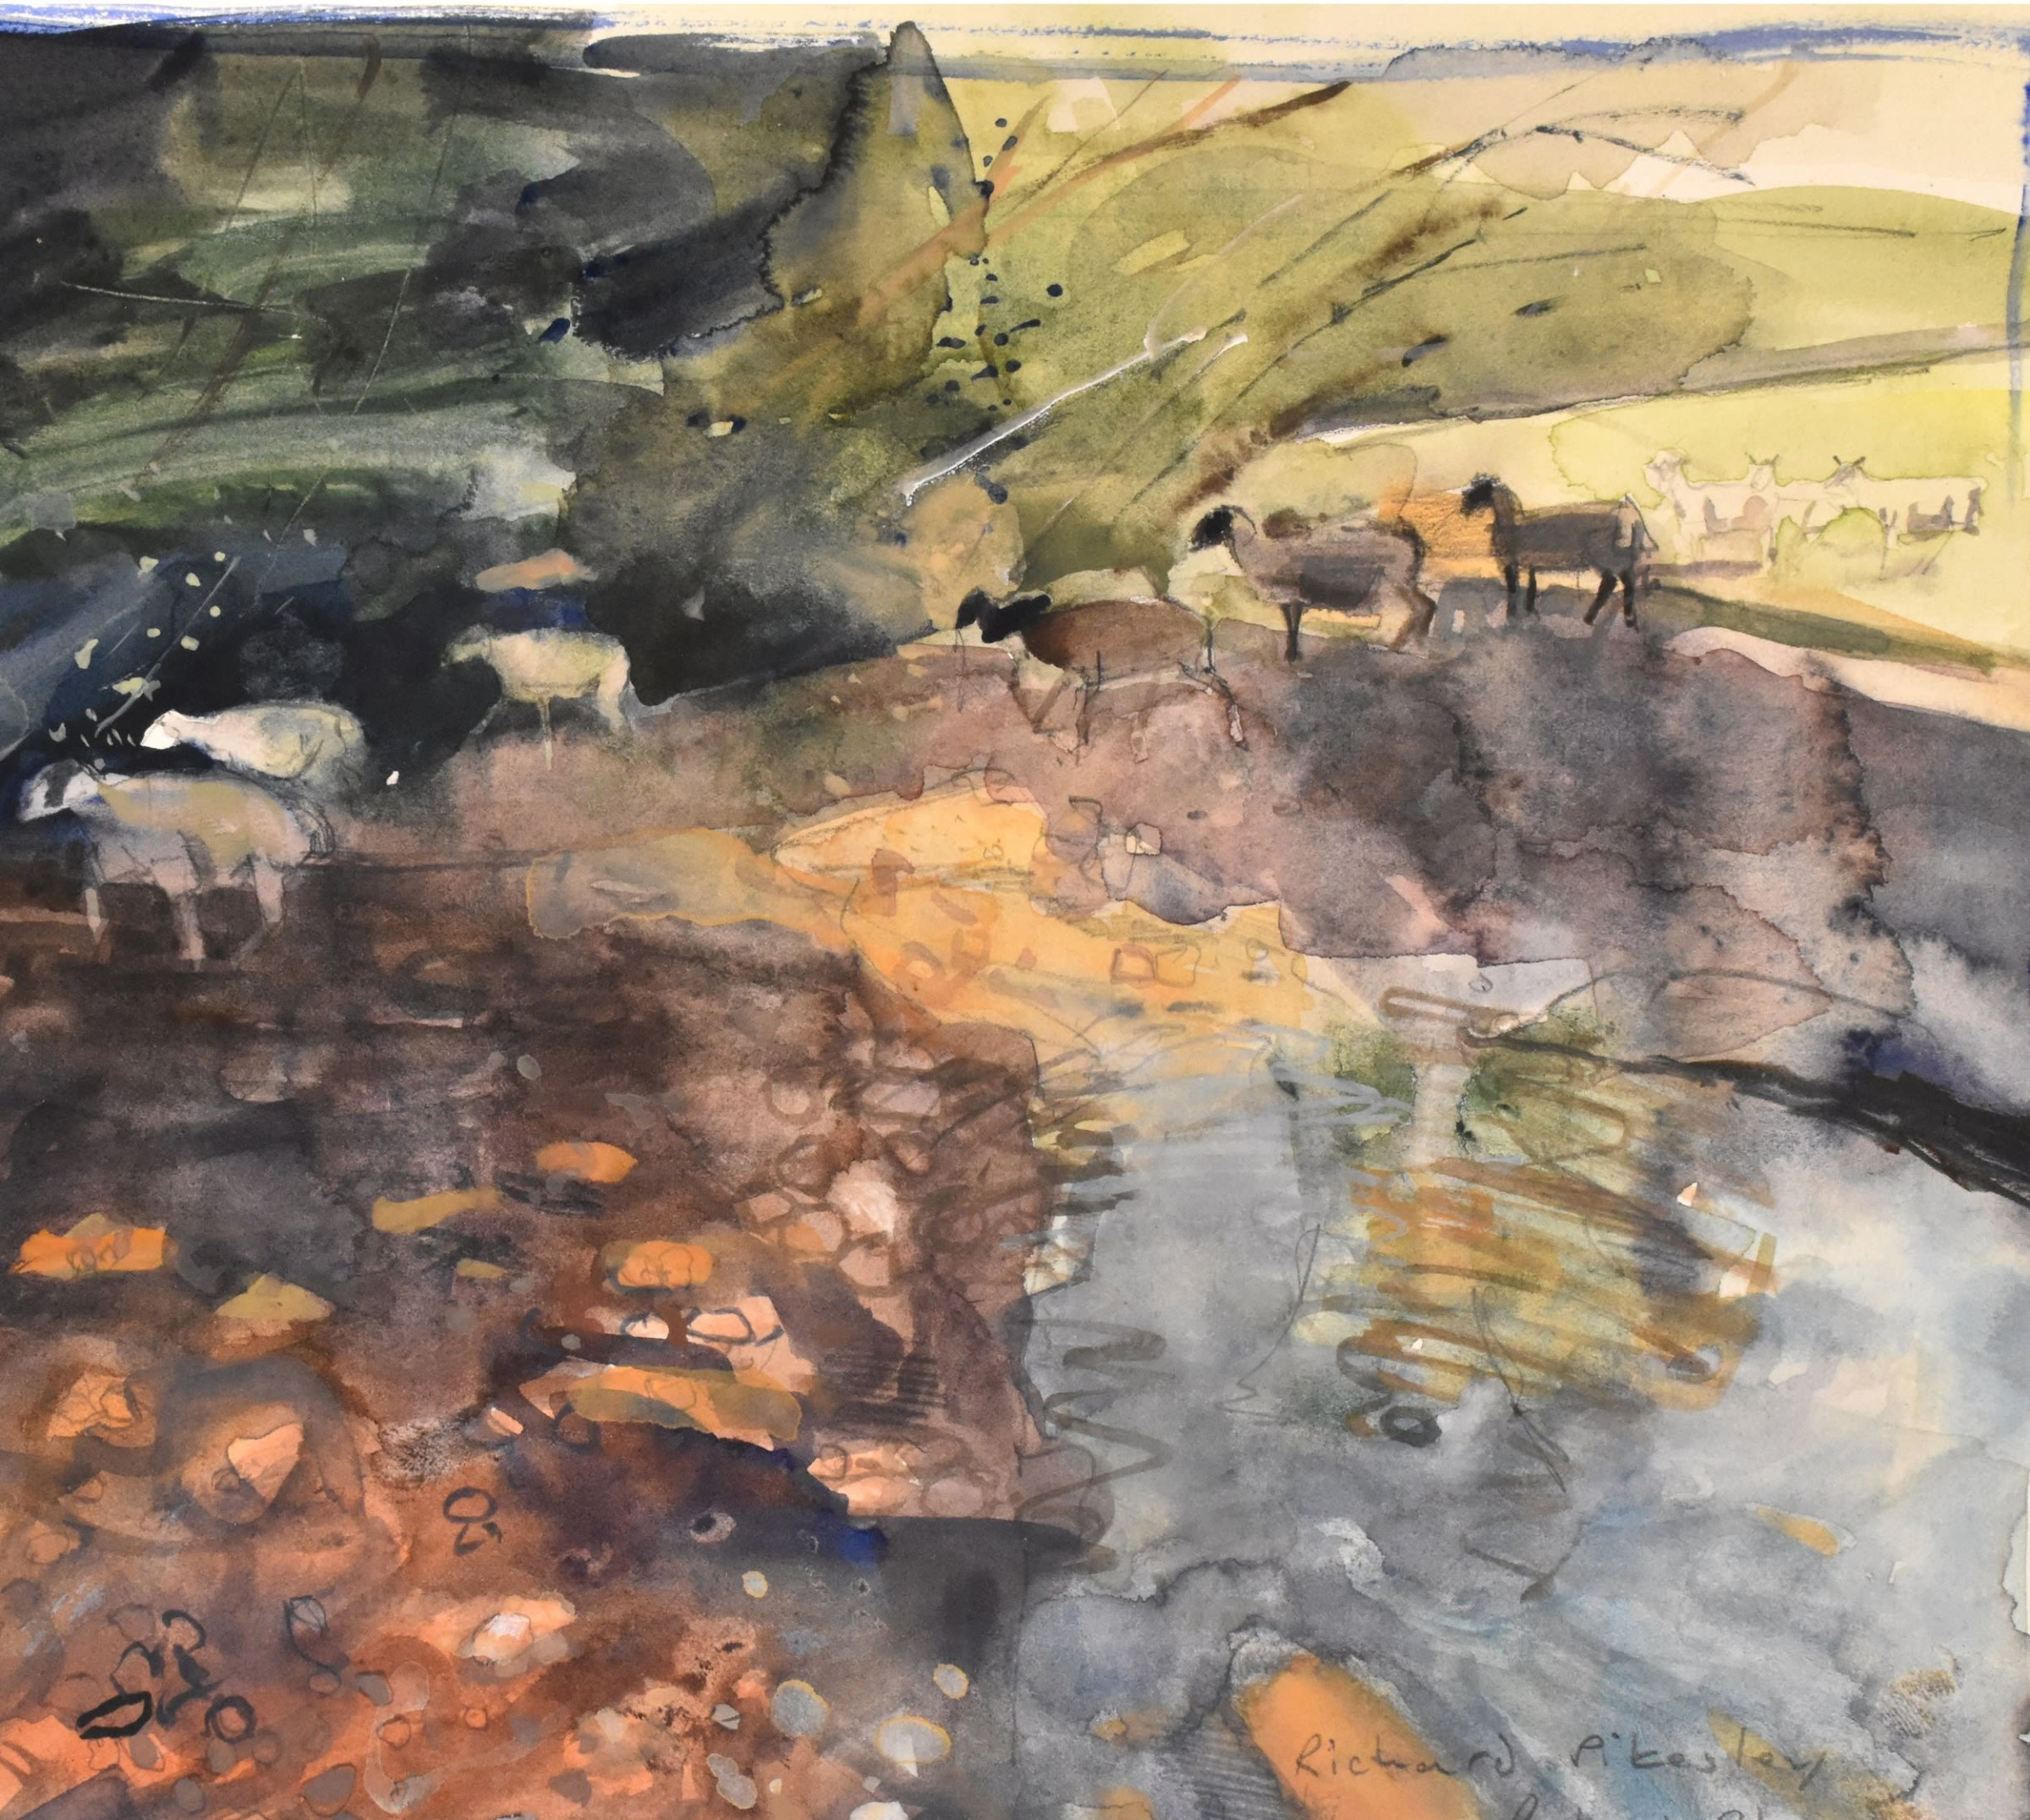 """<span class=""""link fancybox-details-link""""><a href=""""/artists/92-richard-pikesley/works/12133-richard-pikesley-sheep-in-the-stream-axe-valley/"""">View Detail Page</a></span><div class=""""artist""""><span class=""""artist""""><strong>Richard Pikesley</strong></span></div><div class=""""title""""><em>Sheep in the stream, Axe Valley</em></div><div class=""""medium"""">watercolour</div><div class=""""dimensions"""">Frame: 40 x 40 cm<br /> Artwork: 20 x 22 cm</div><div class=""""price"""">£600.00</div>"""